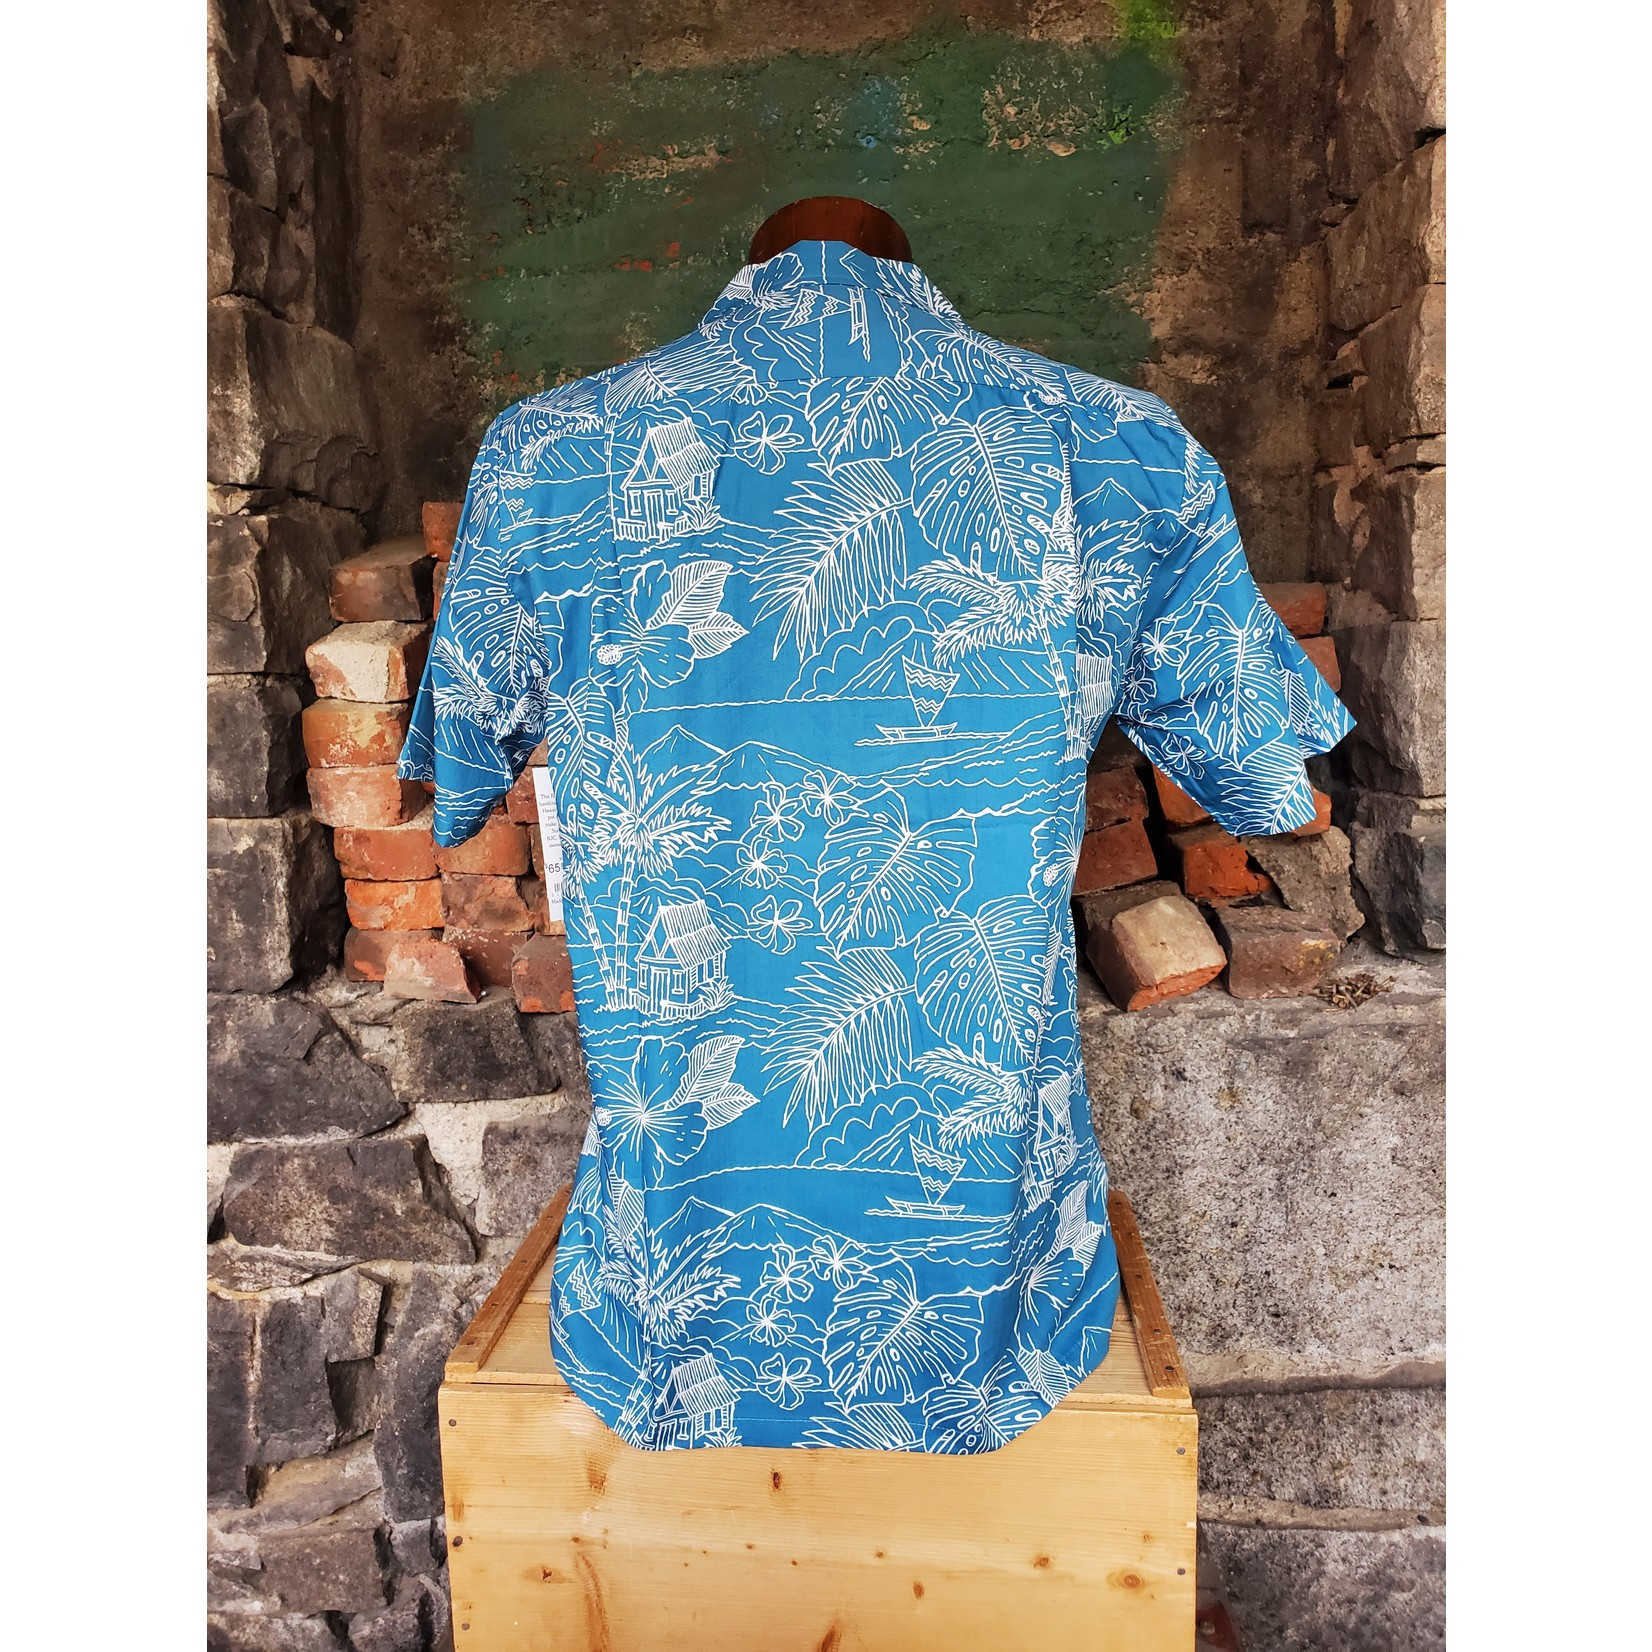 RJC Authentic Hawaiian Shirt - Floral Lines